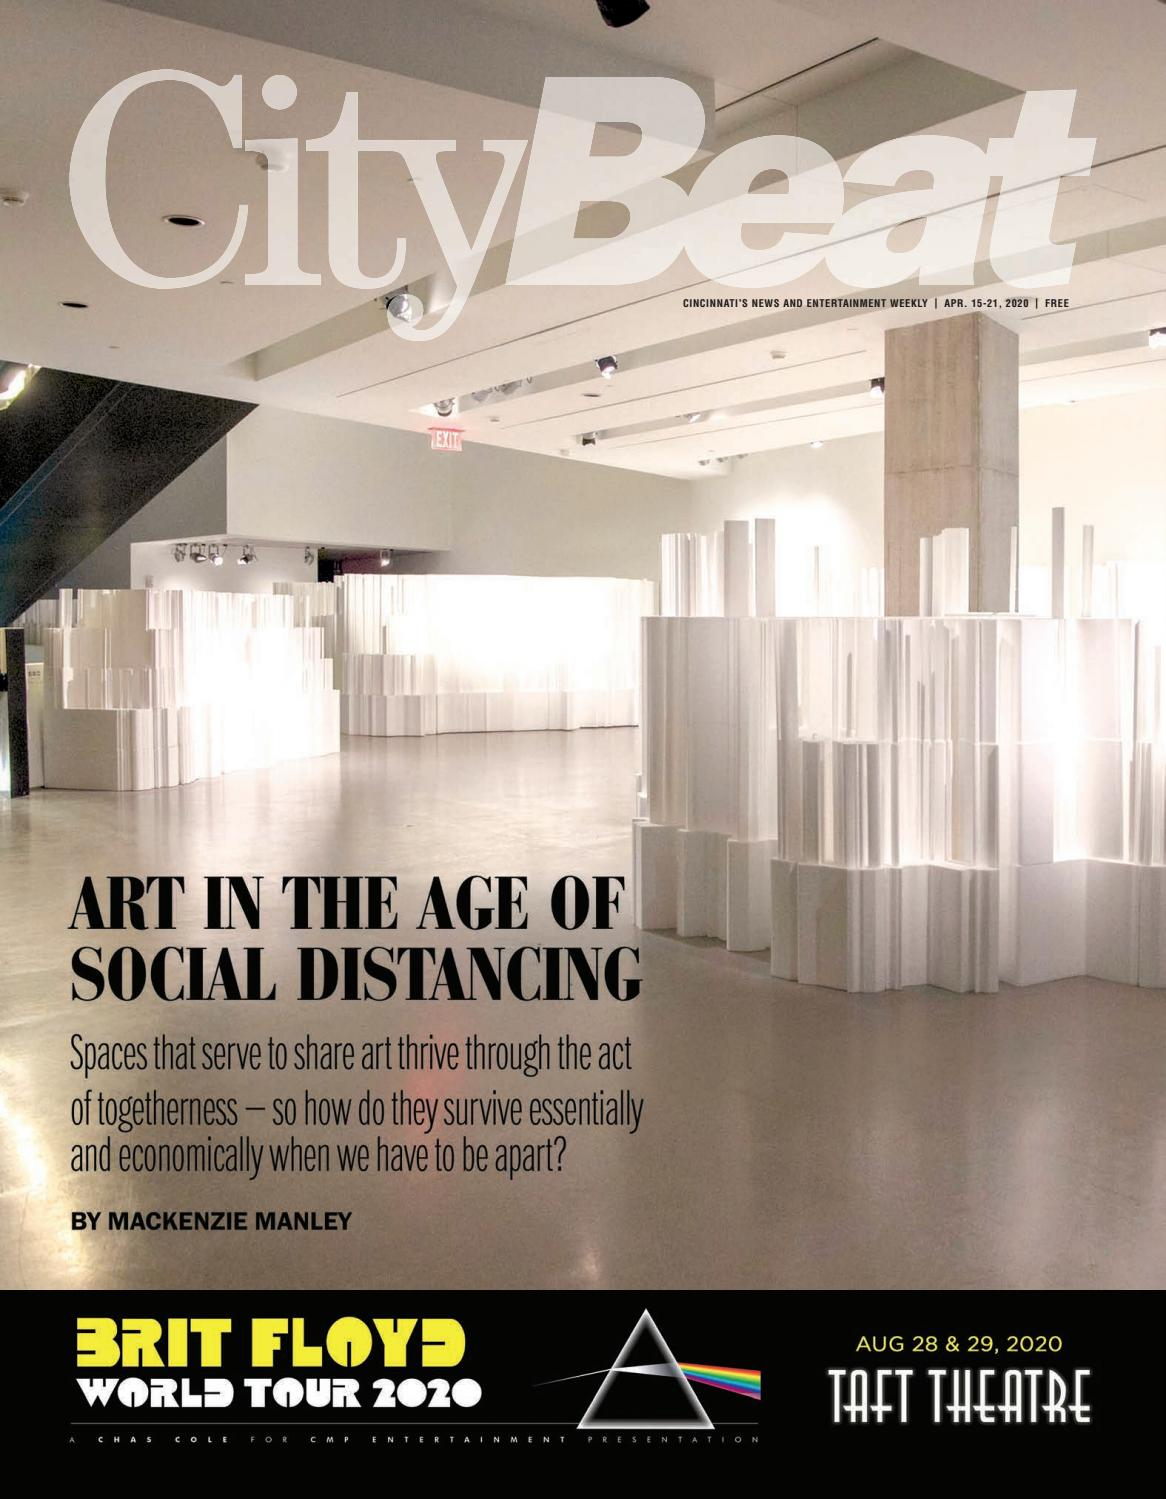 Citybeat April 15 2020 By Euclid Media Group Issuu